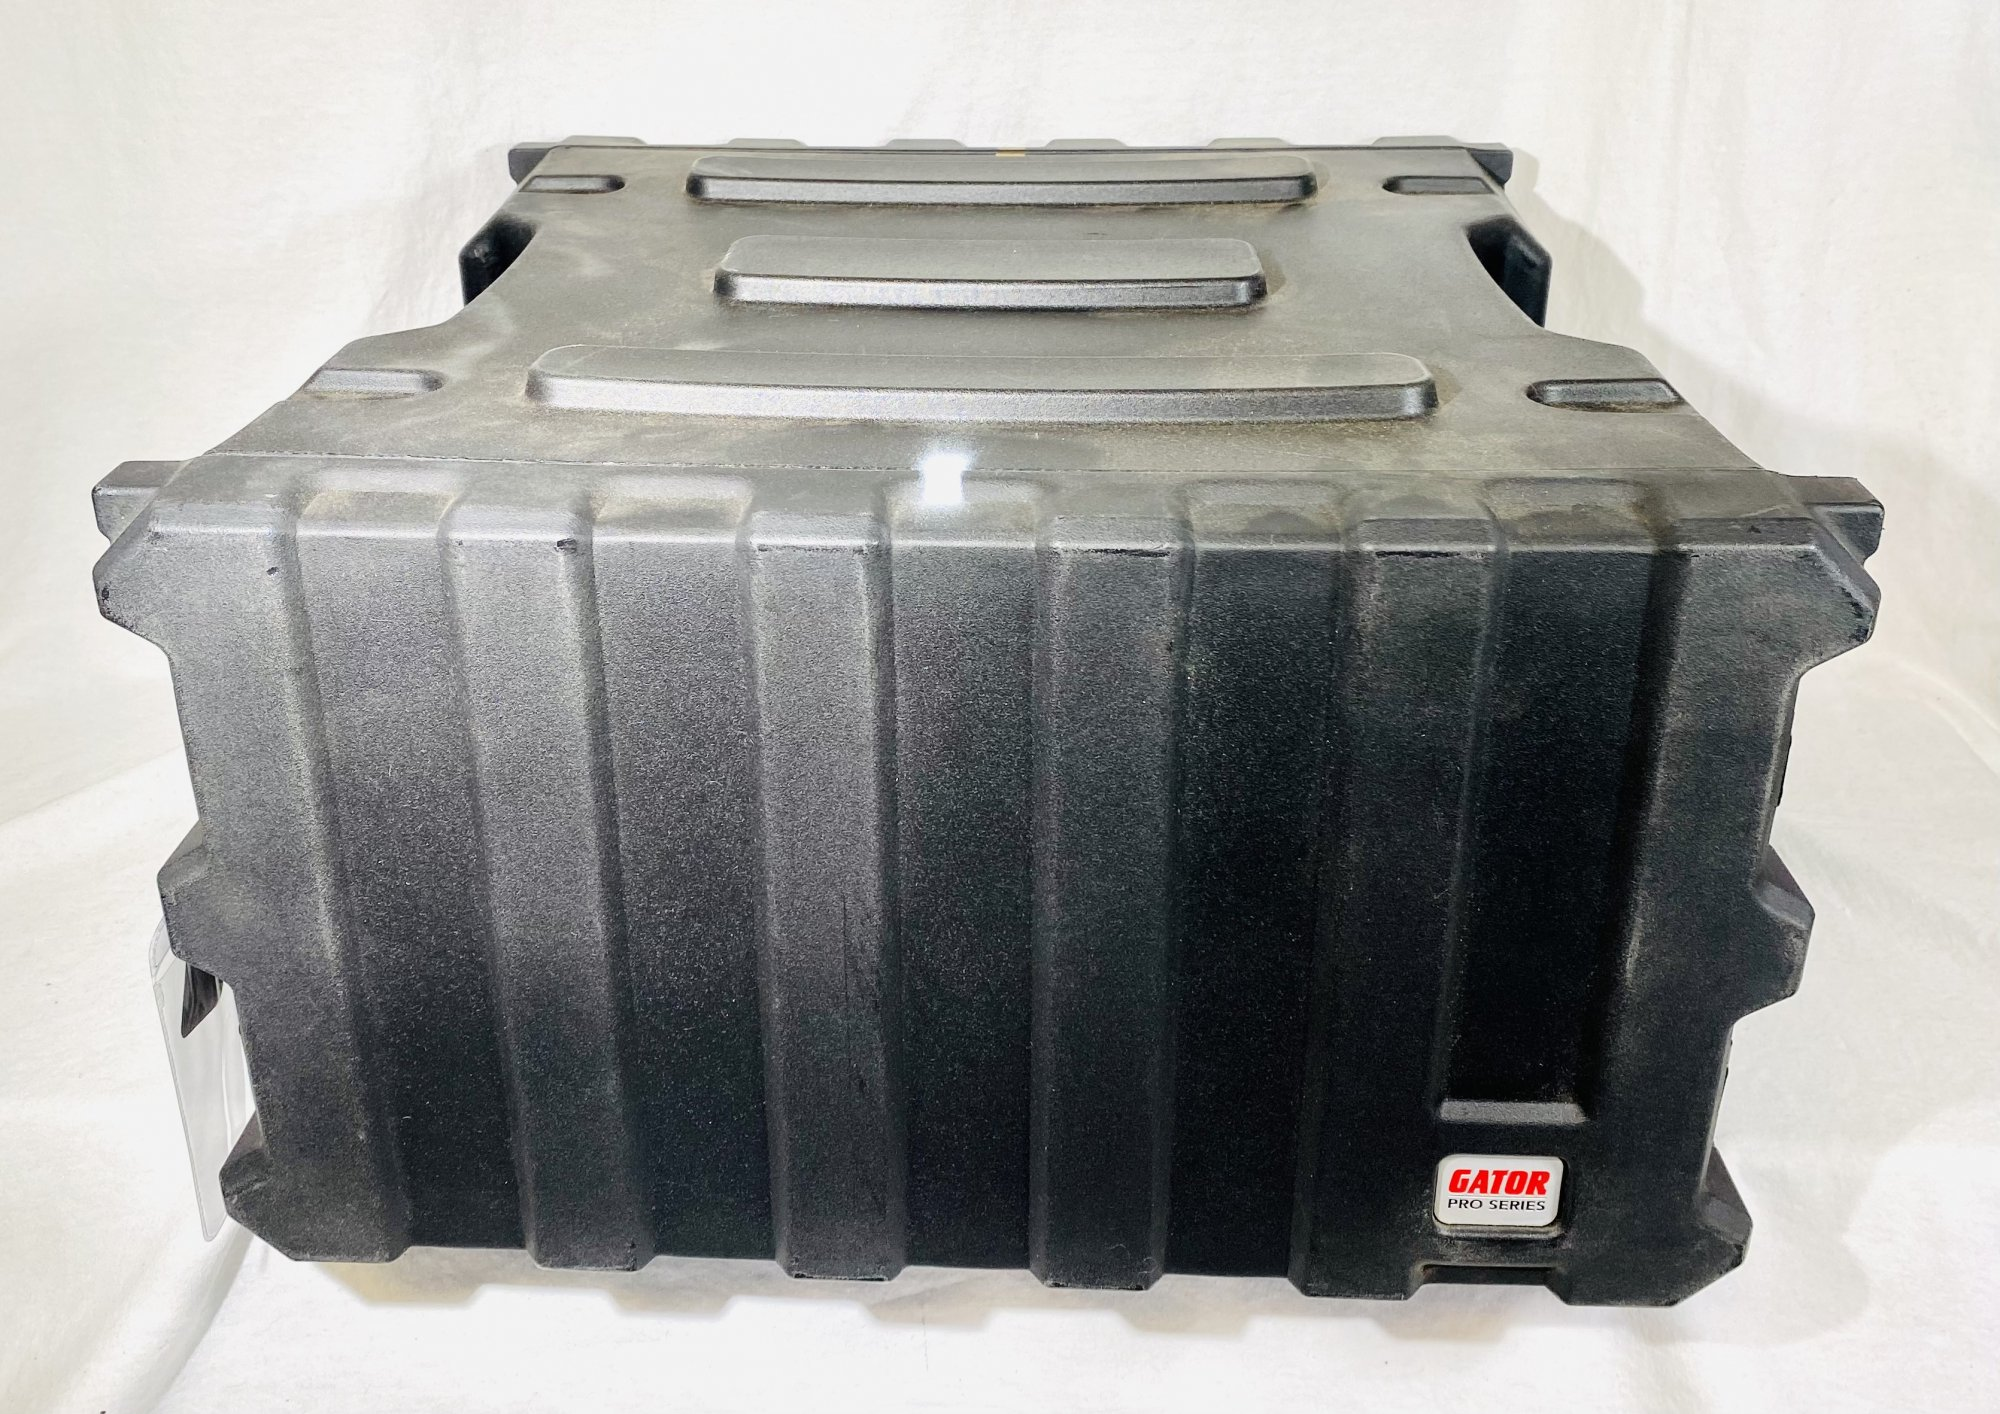 GATOR PRO 6 SPACE RACK, MOLDED WITH LIDS